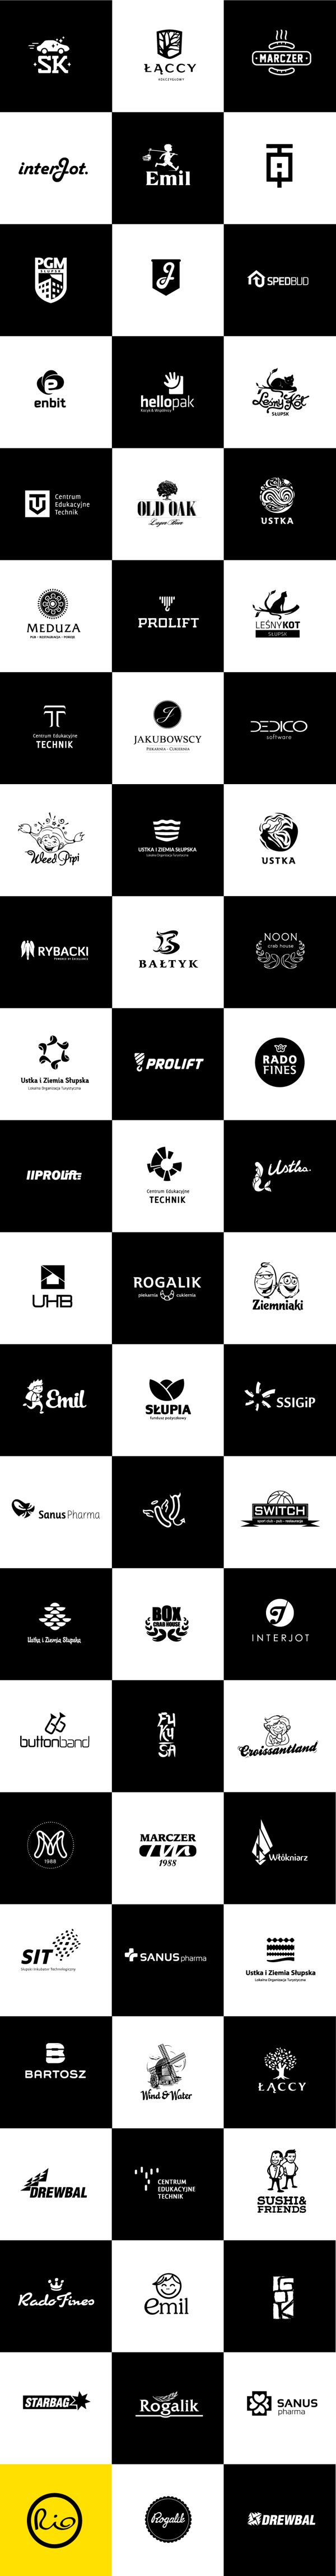 Logos B&W by Rio Creativo, via Behance